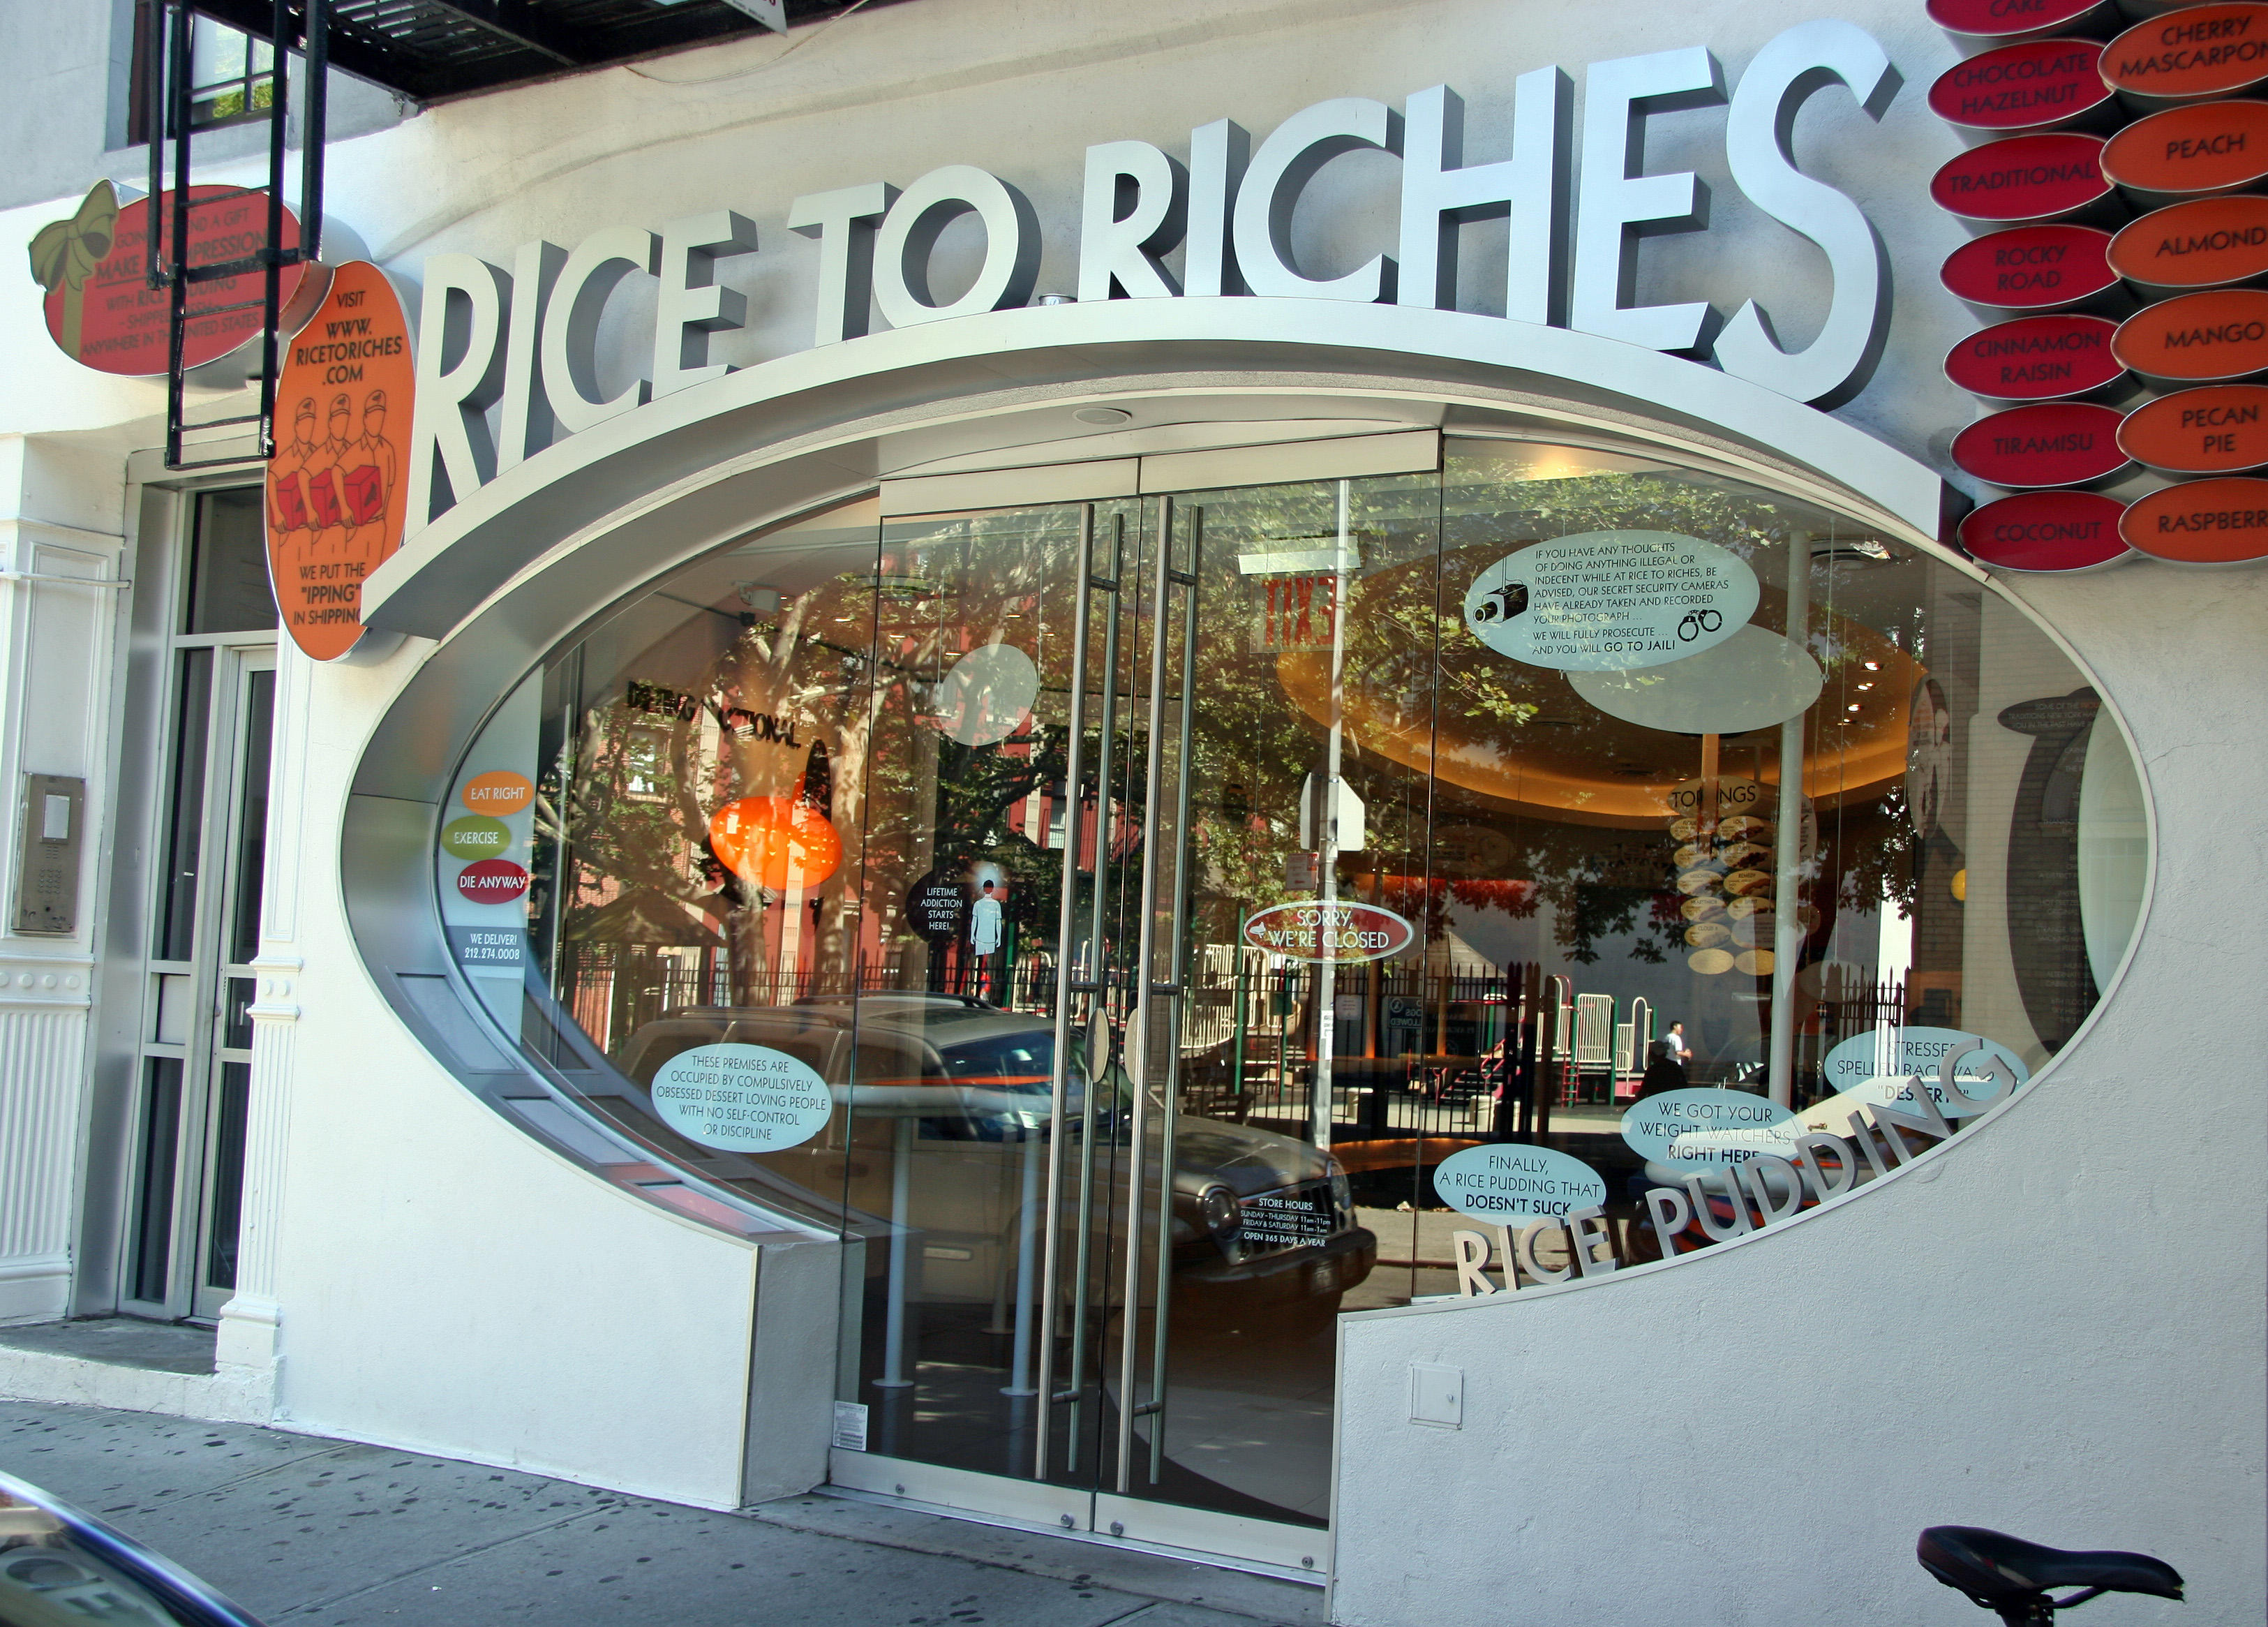 Rice to Riches Refreshments